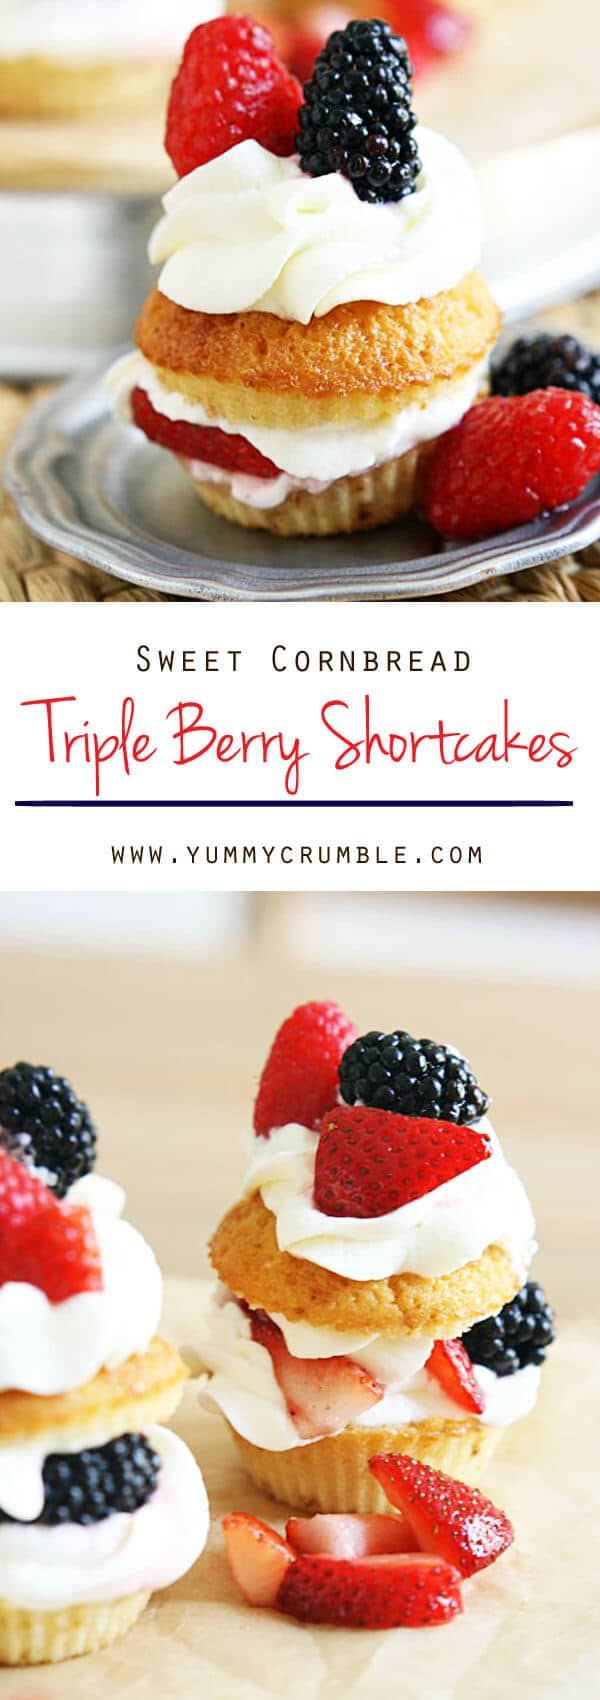 Sweet Cornbread Triple Berry Shortcakes. Triple berries sugared and piled with fluffy clouds of homemade whipped cream. The best shortcake you'll ever have!